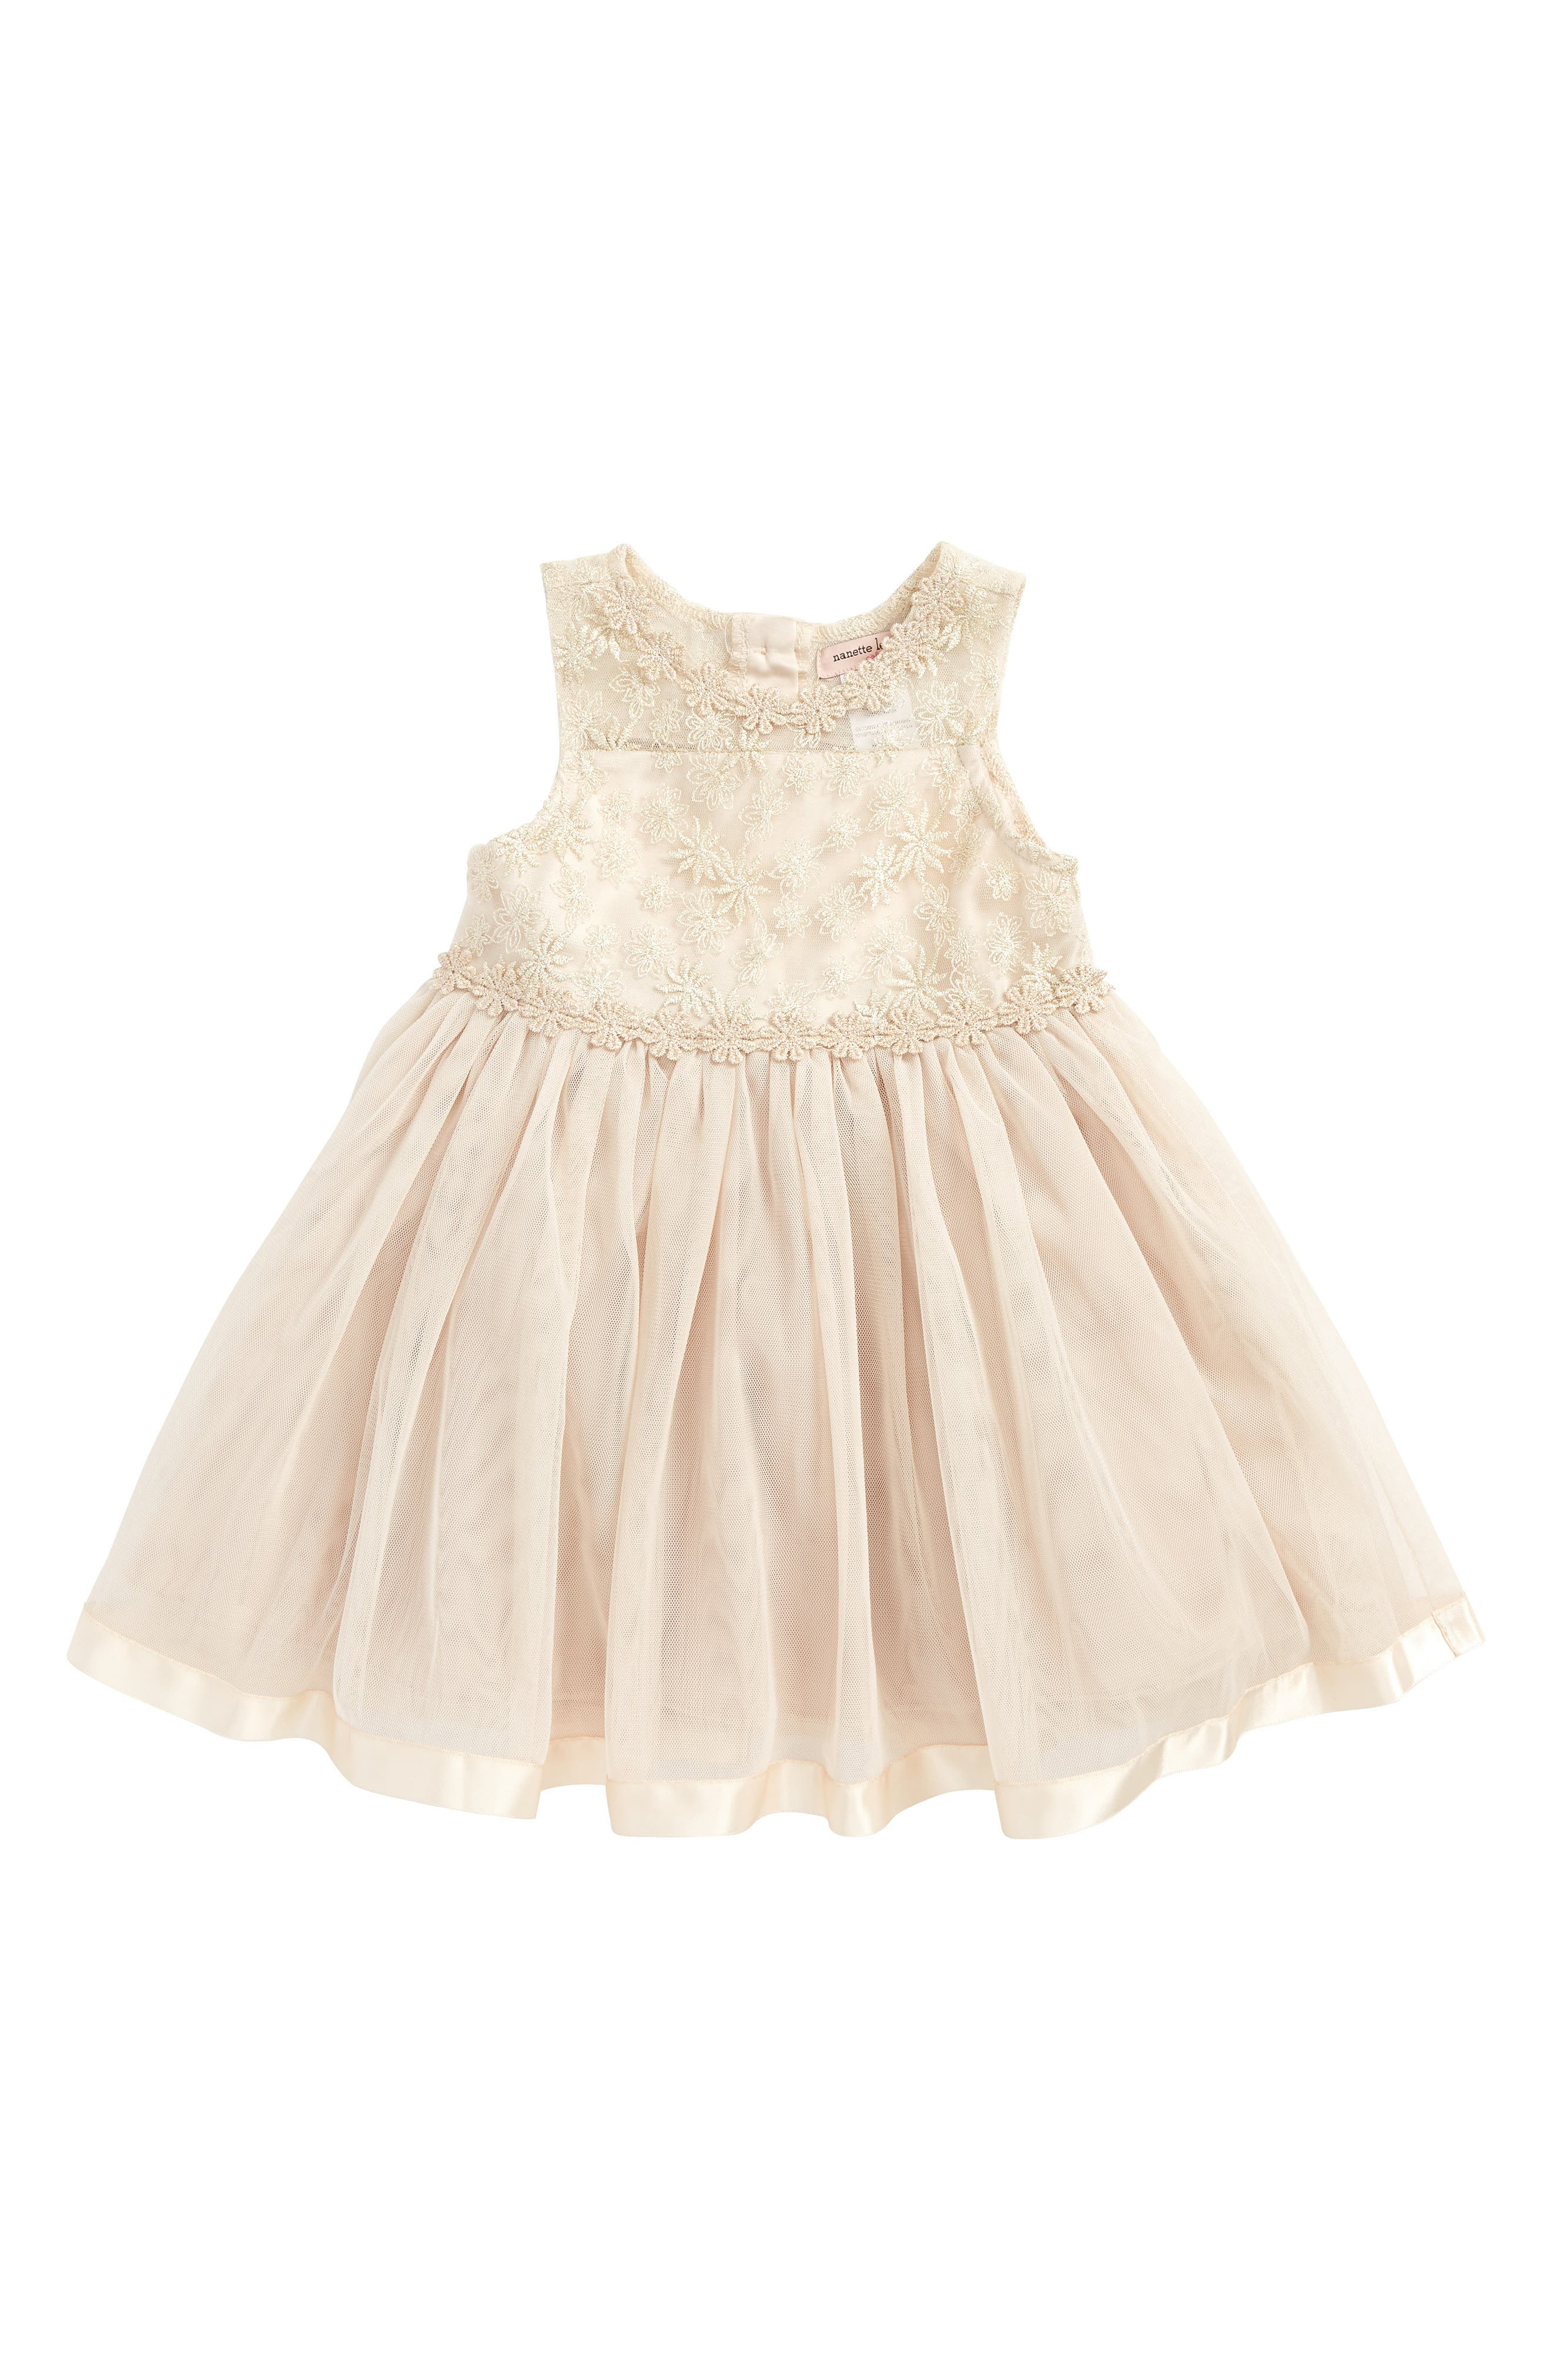 Main Image - Nanette Lepore Lace & Tulle Dress (Baby Girls)